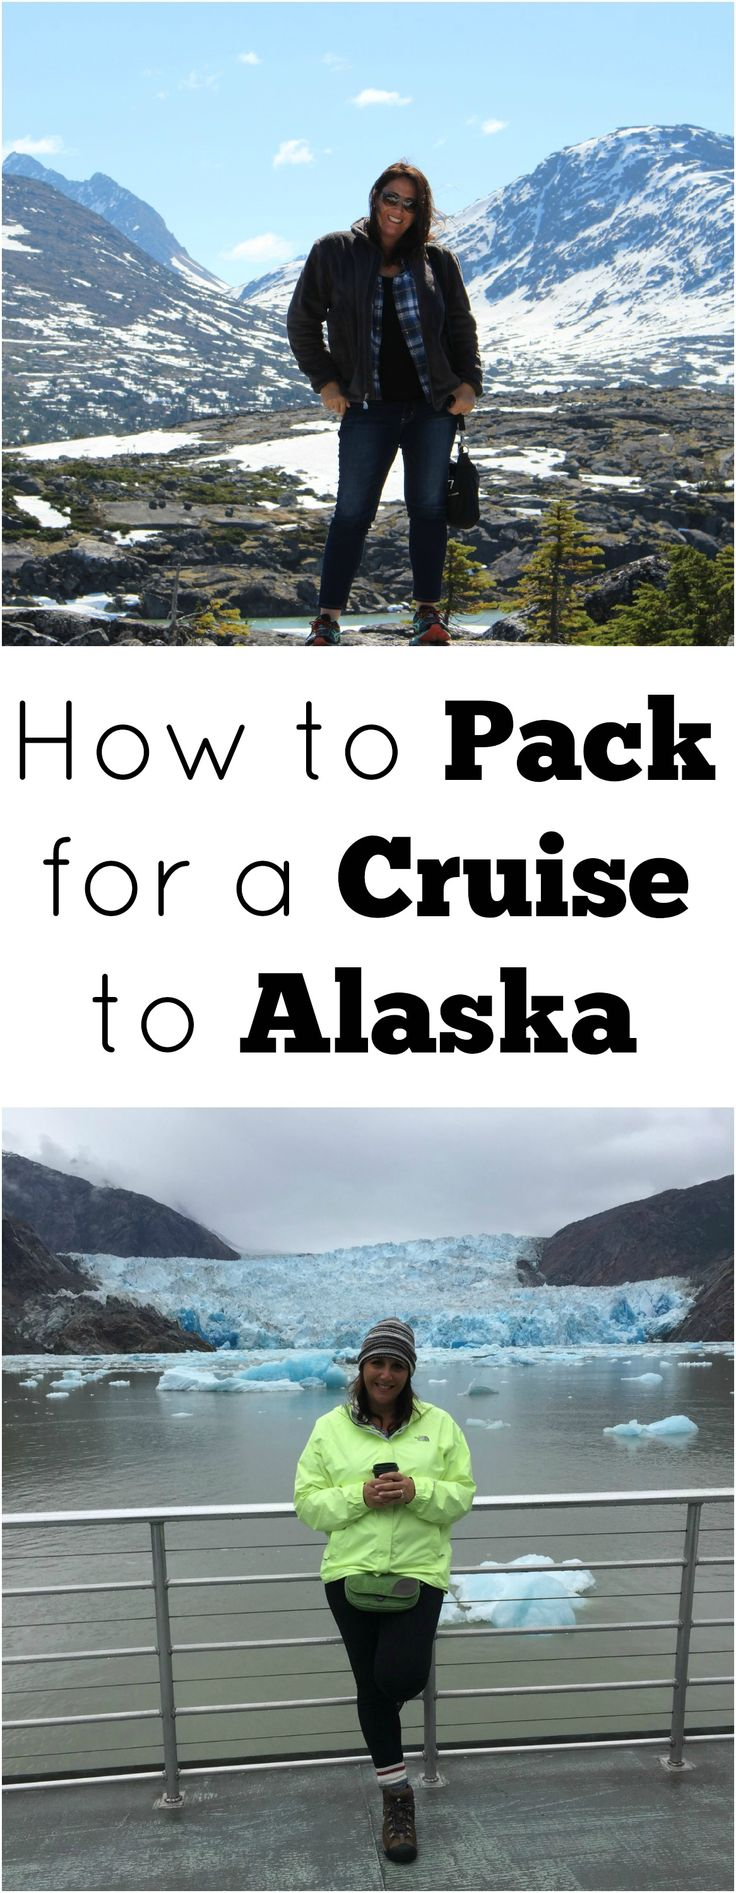 How to pack for a cruise to Alaska - printable packing list and advice #travel #alaska #alaskacruise